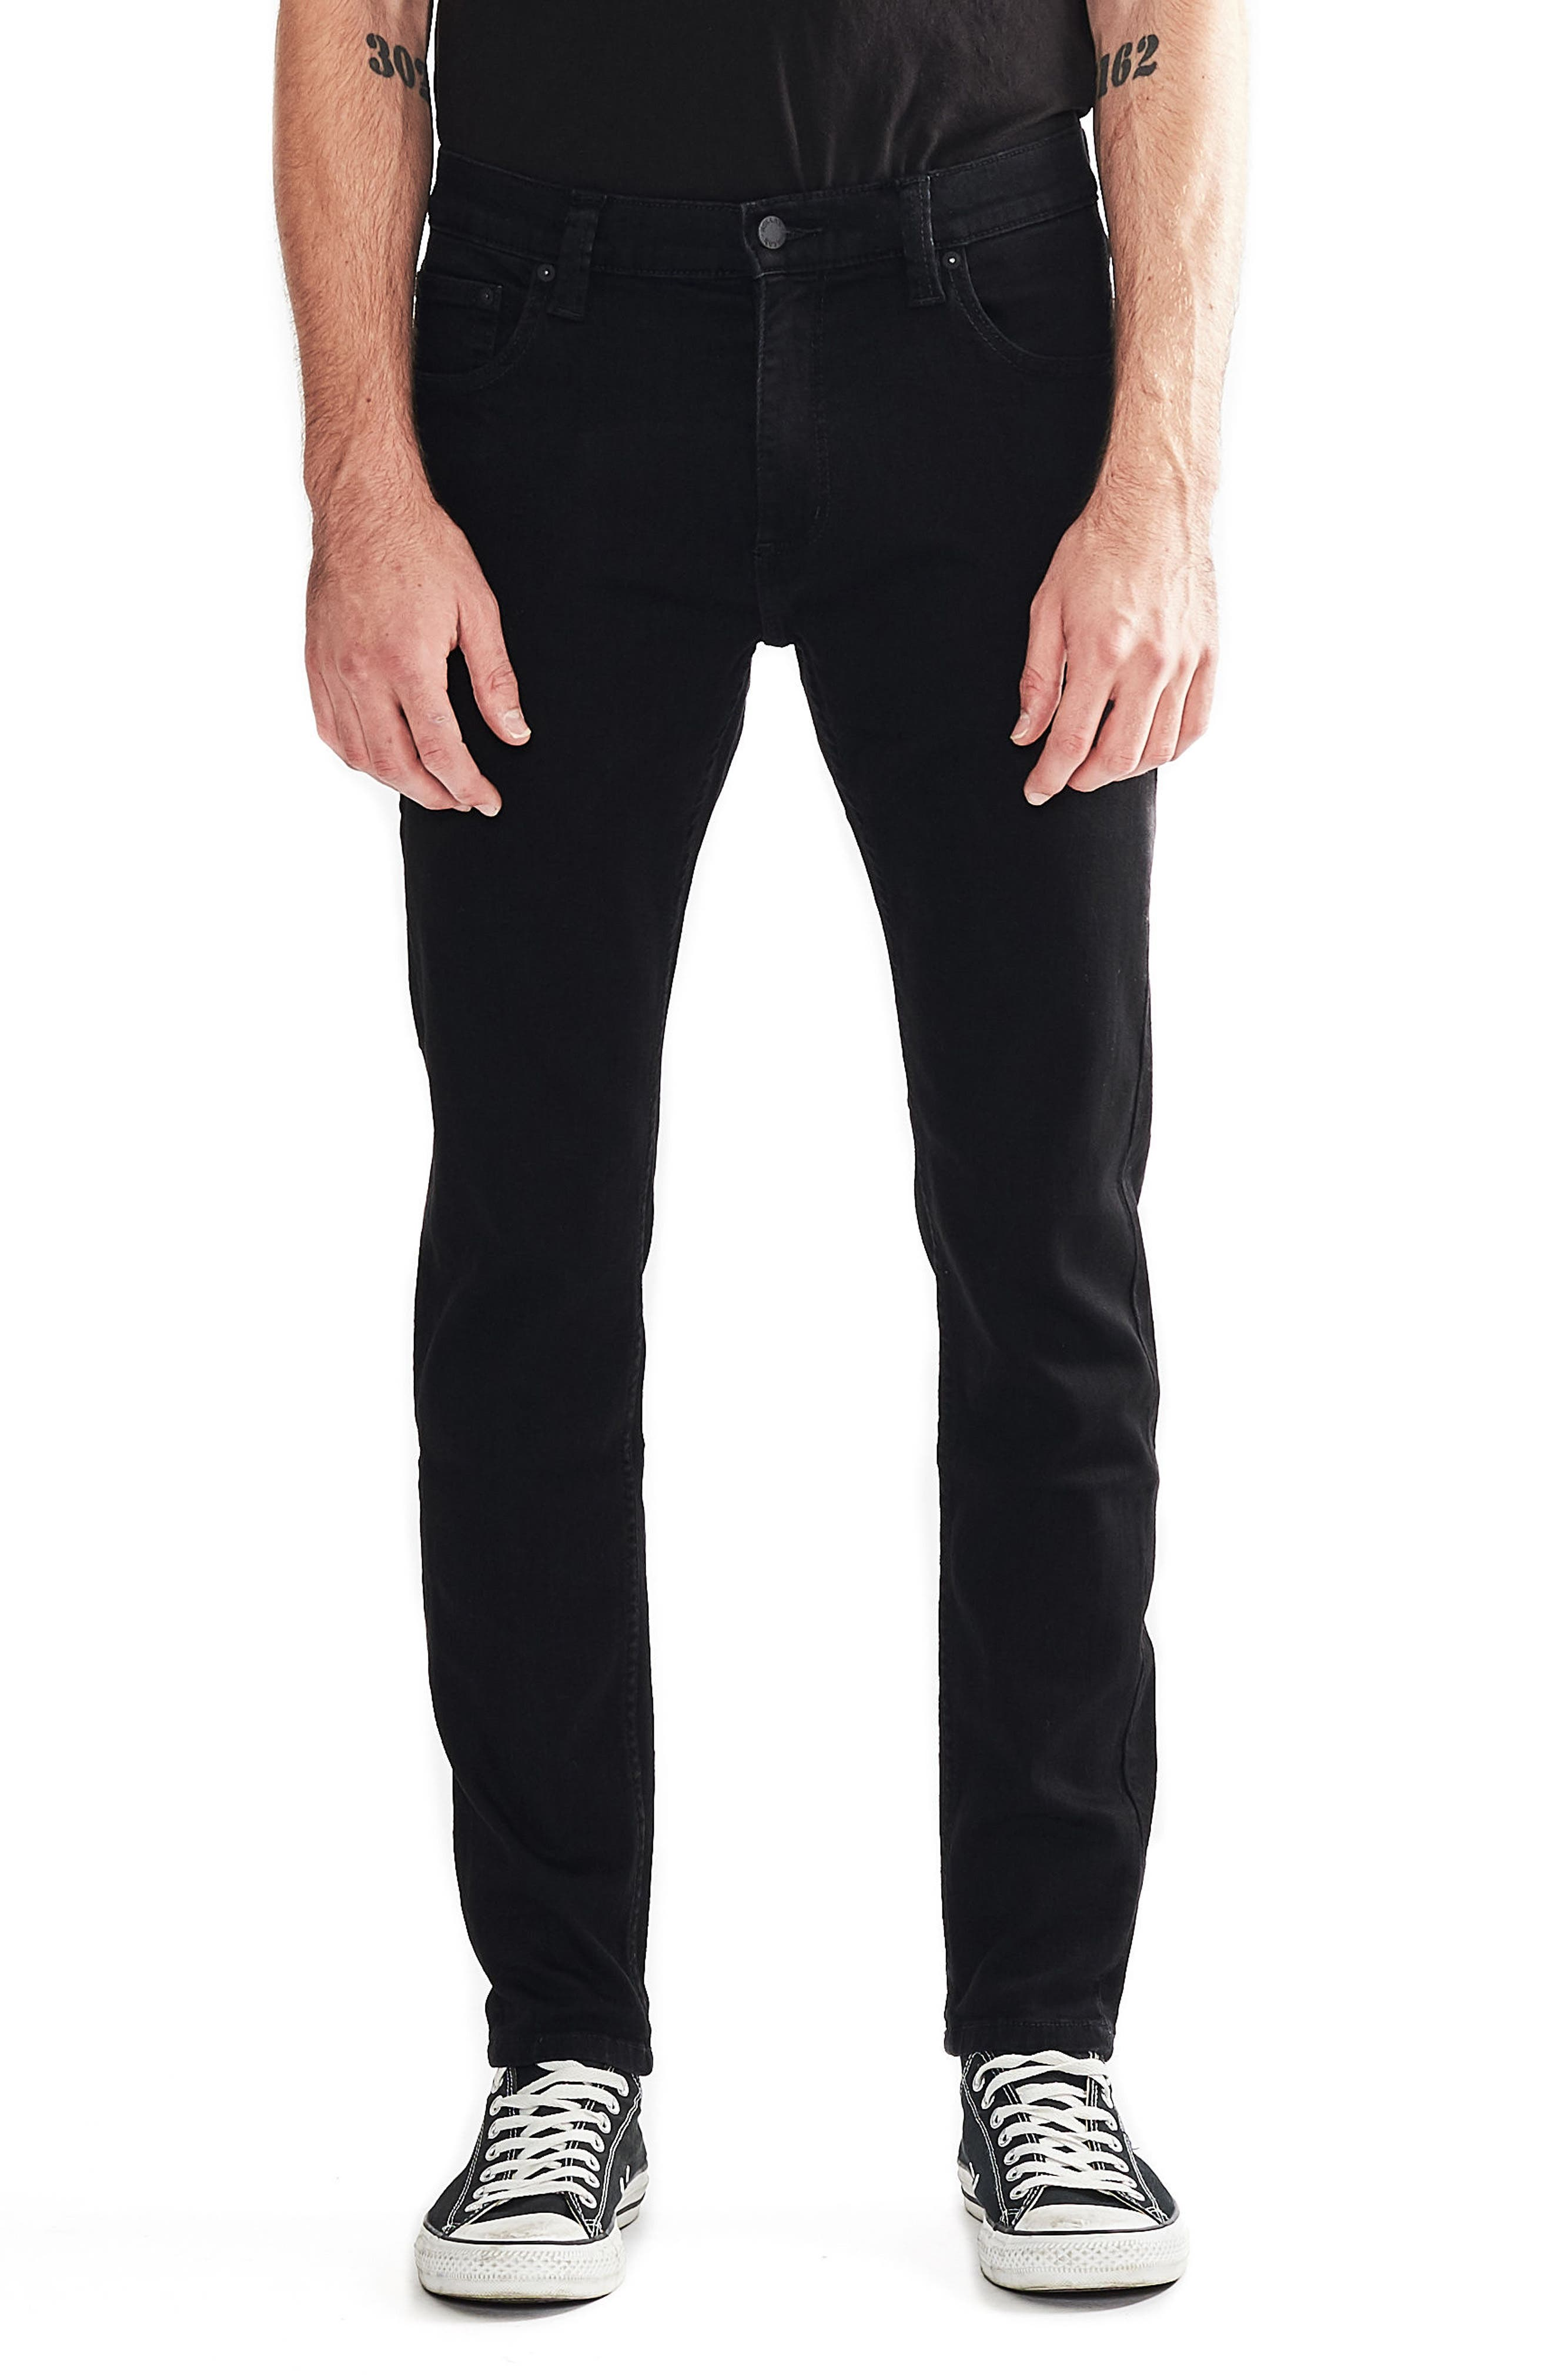 ROLLA'S Stinger Skinny Fit Jeans (Black Gold)